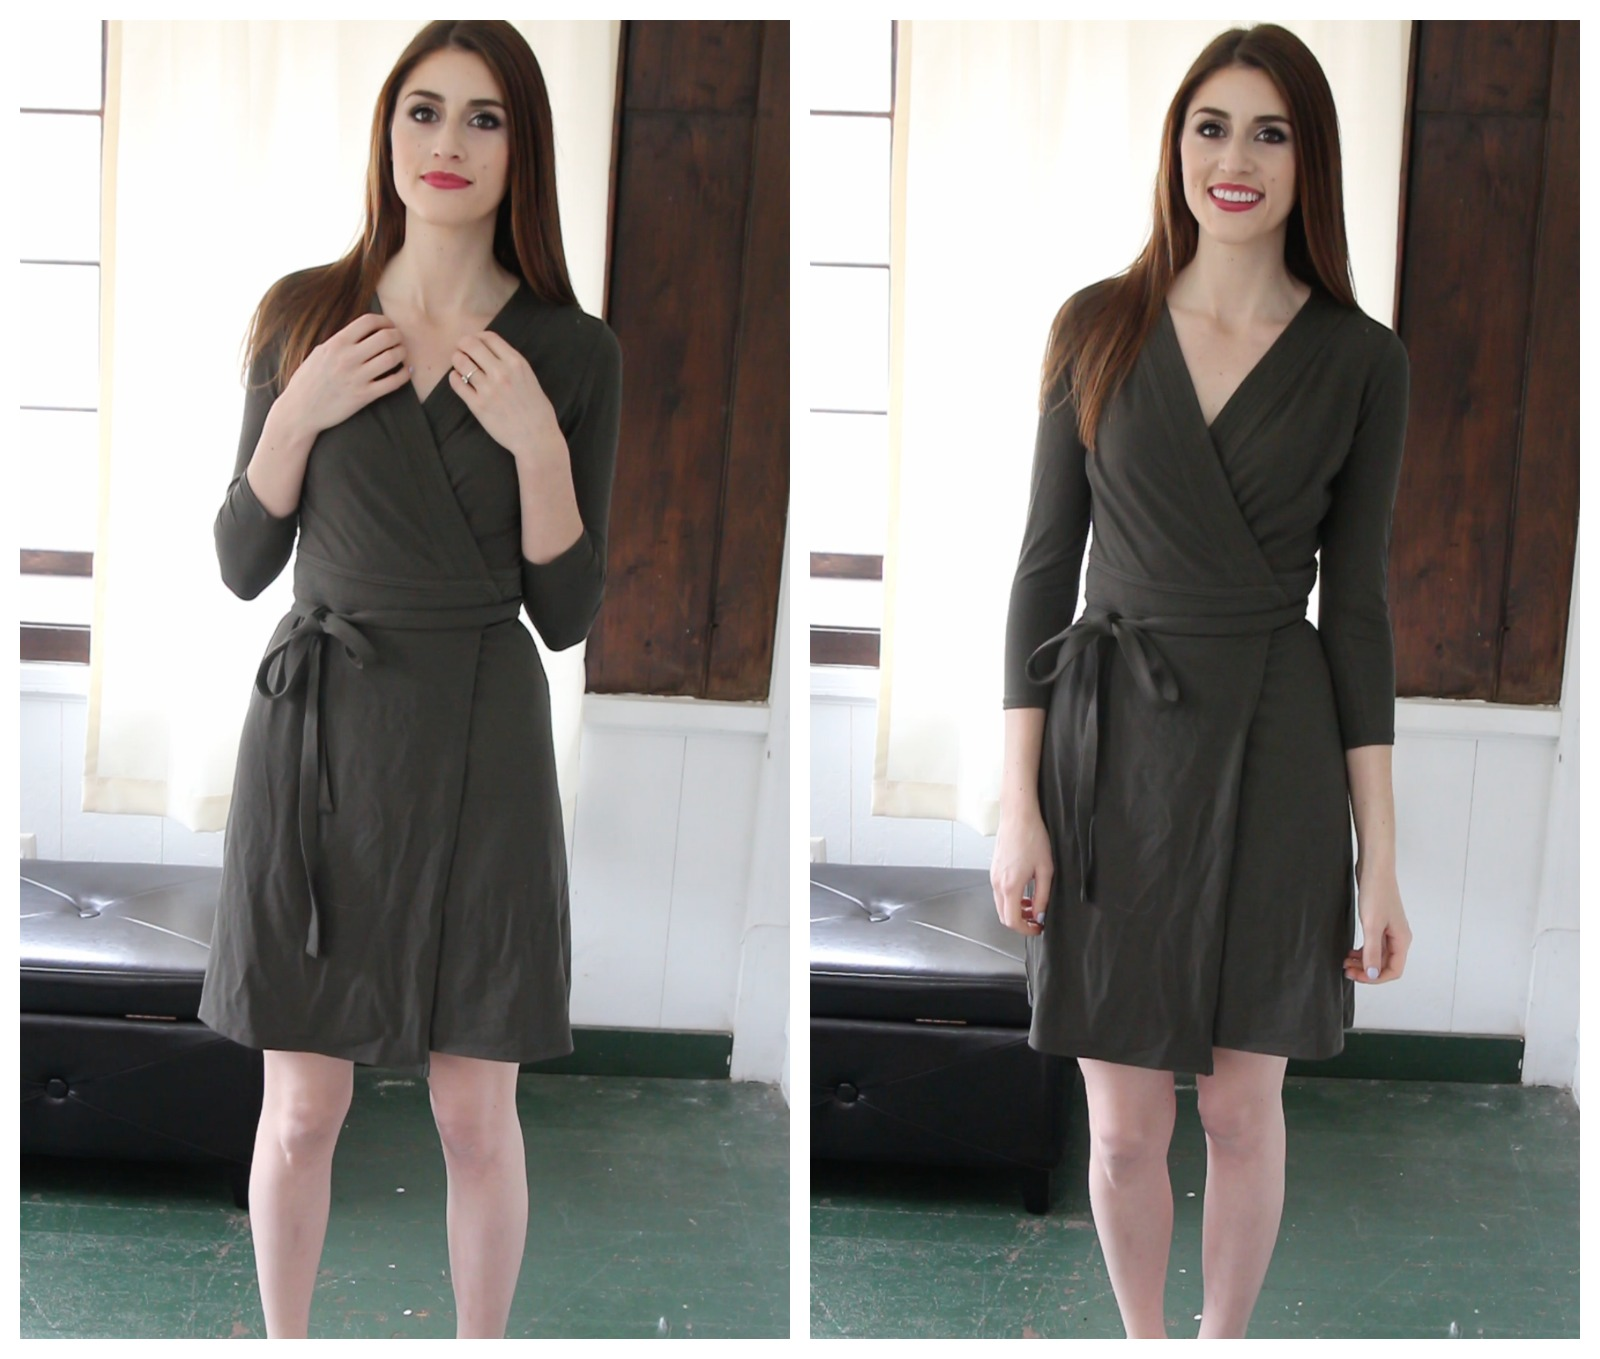 Work Dress Styles- dresses that are perfect for work